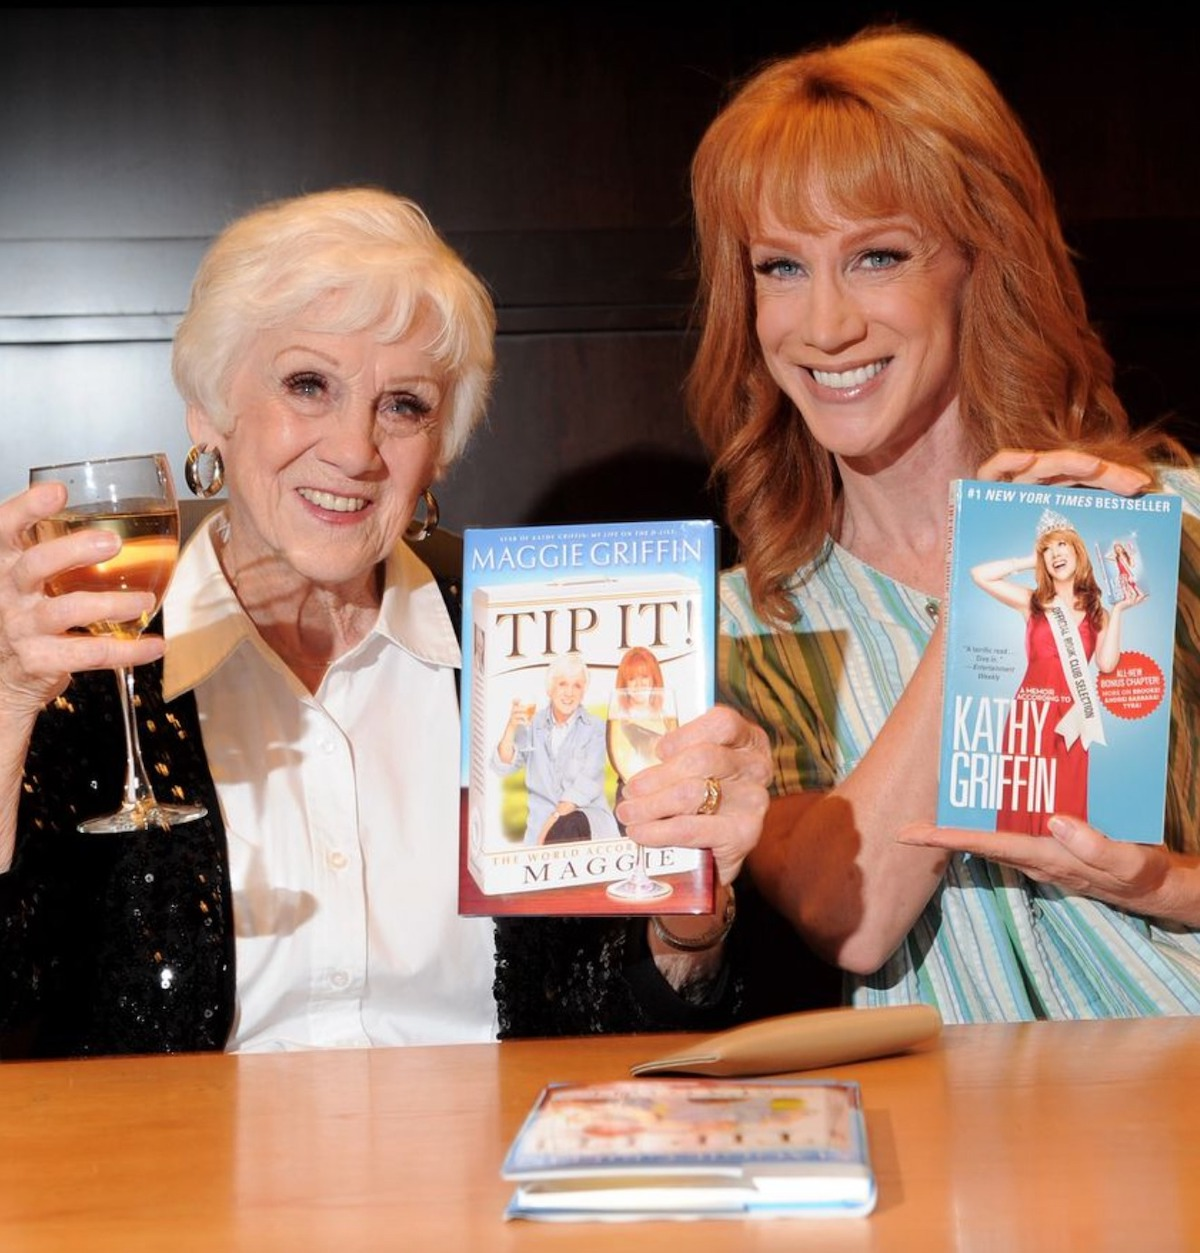 kathy griffin attrice cancro